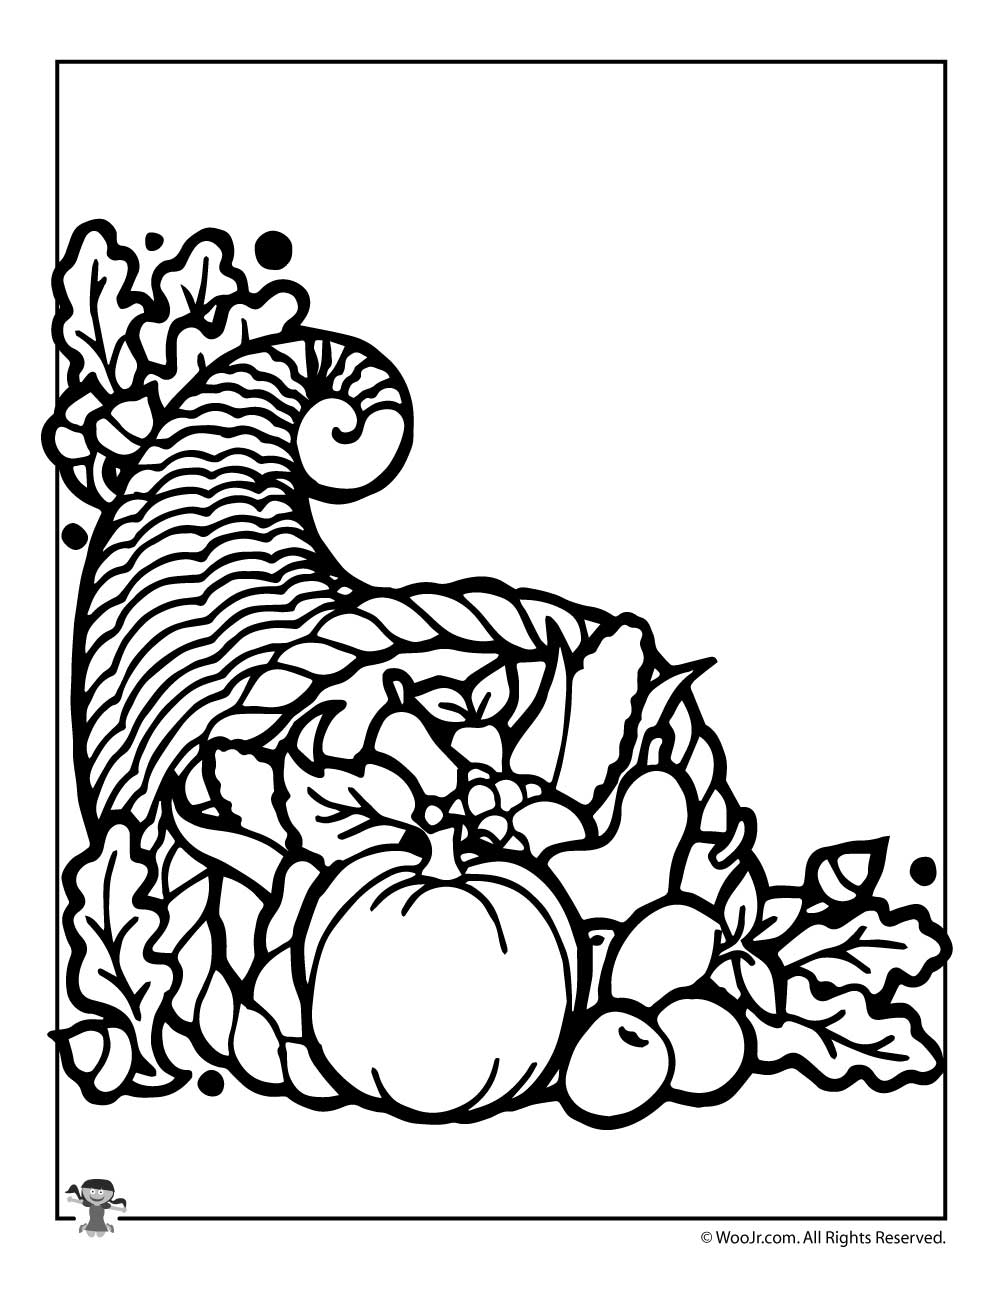 sharethis copy and paste - Cornucopia Coloring Page